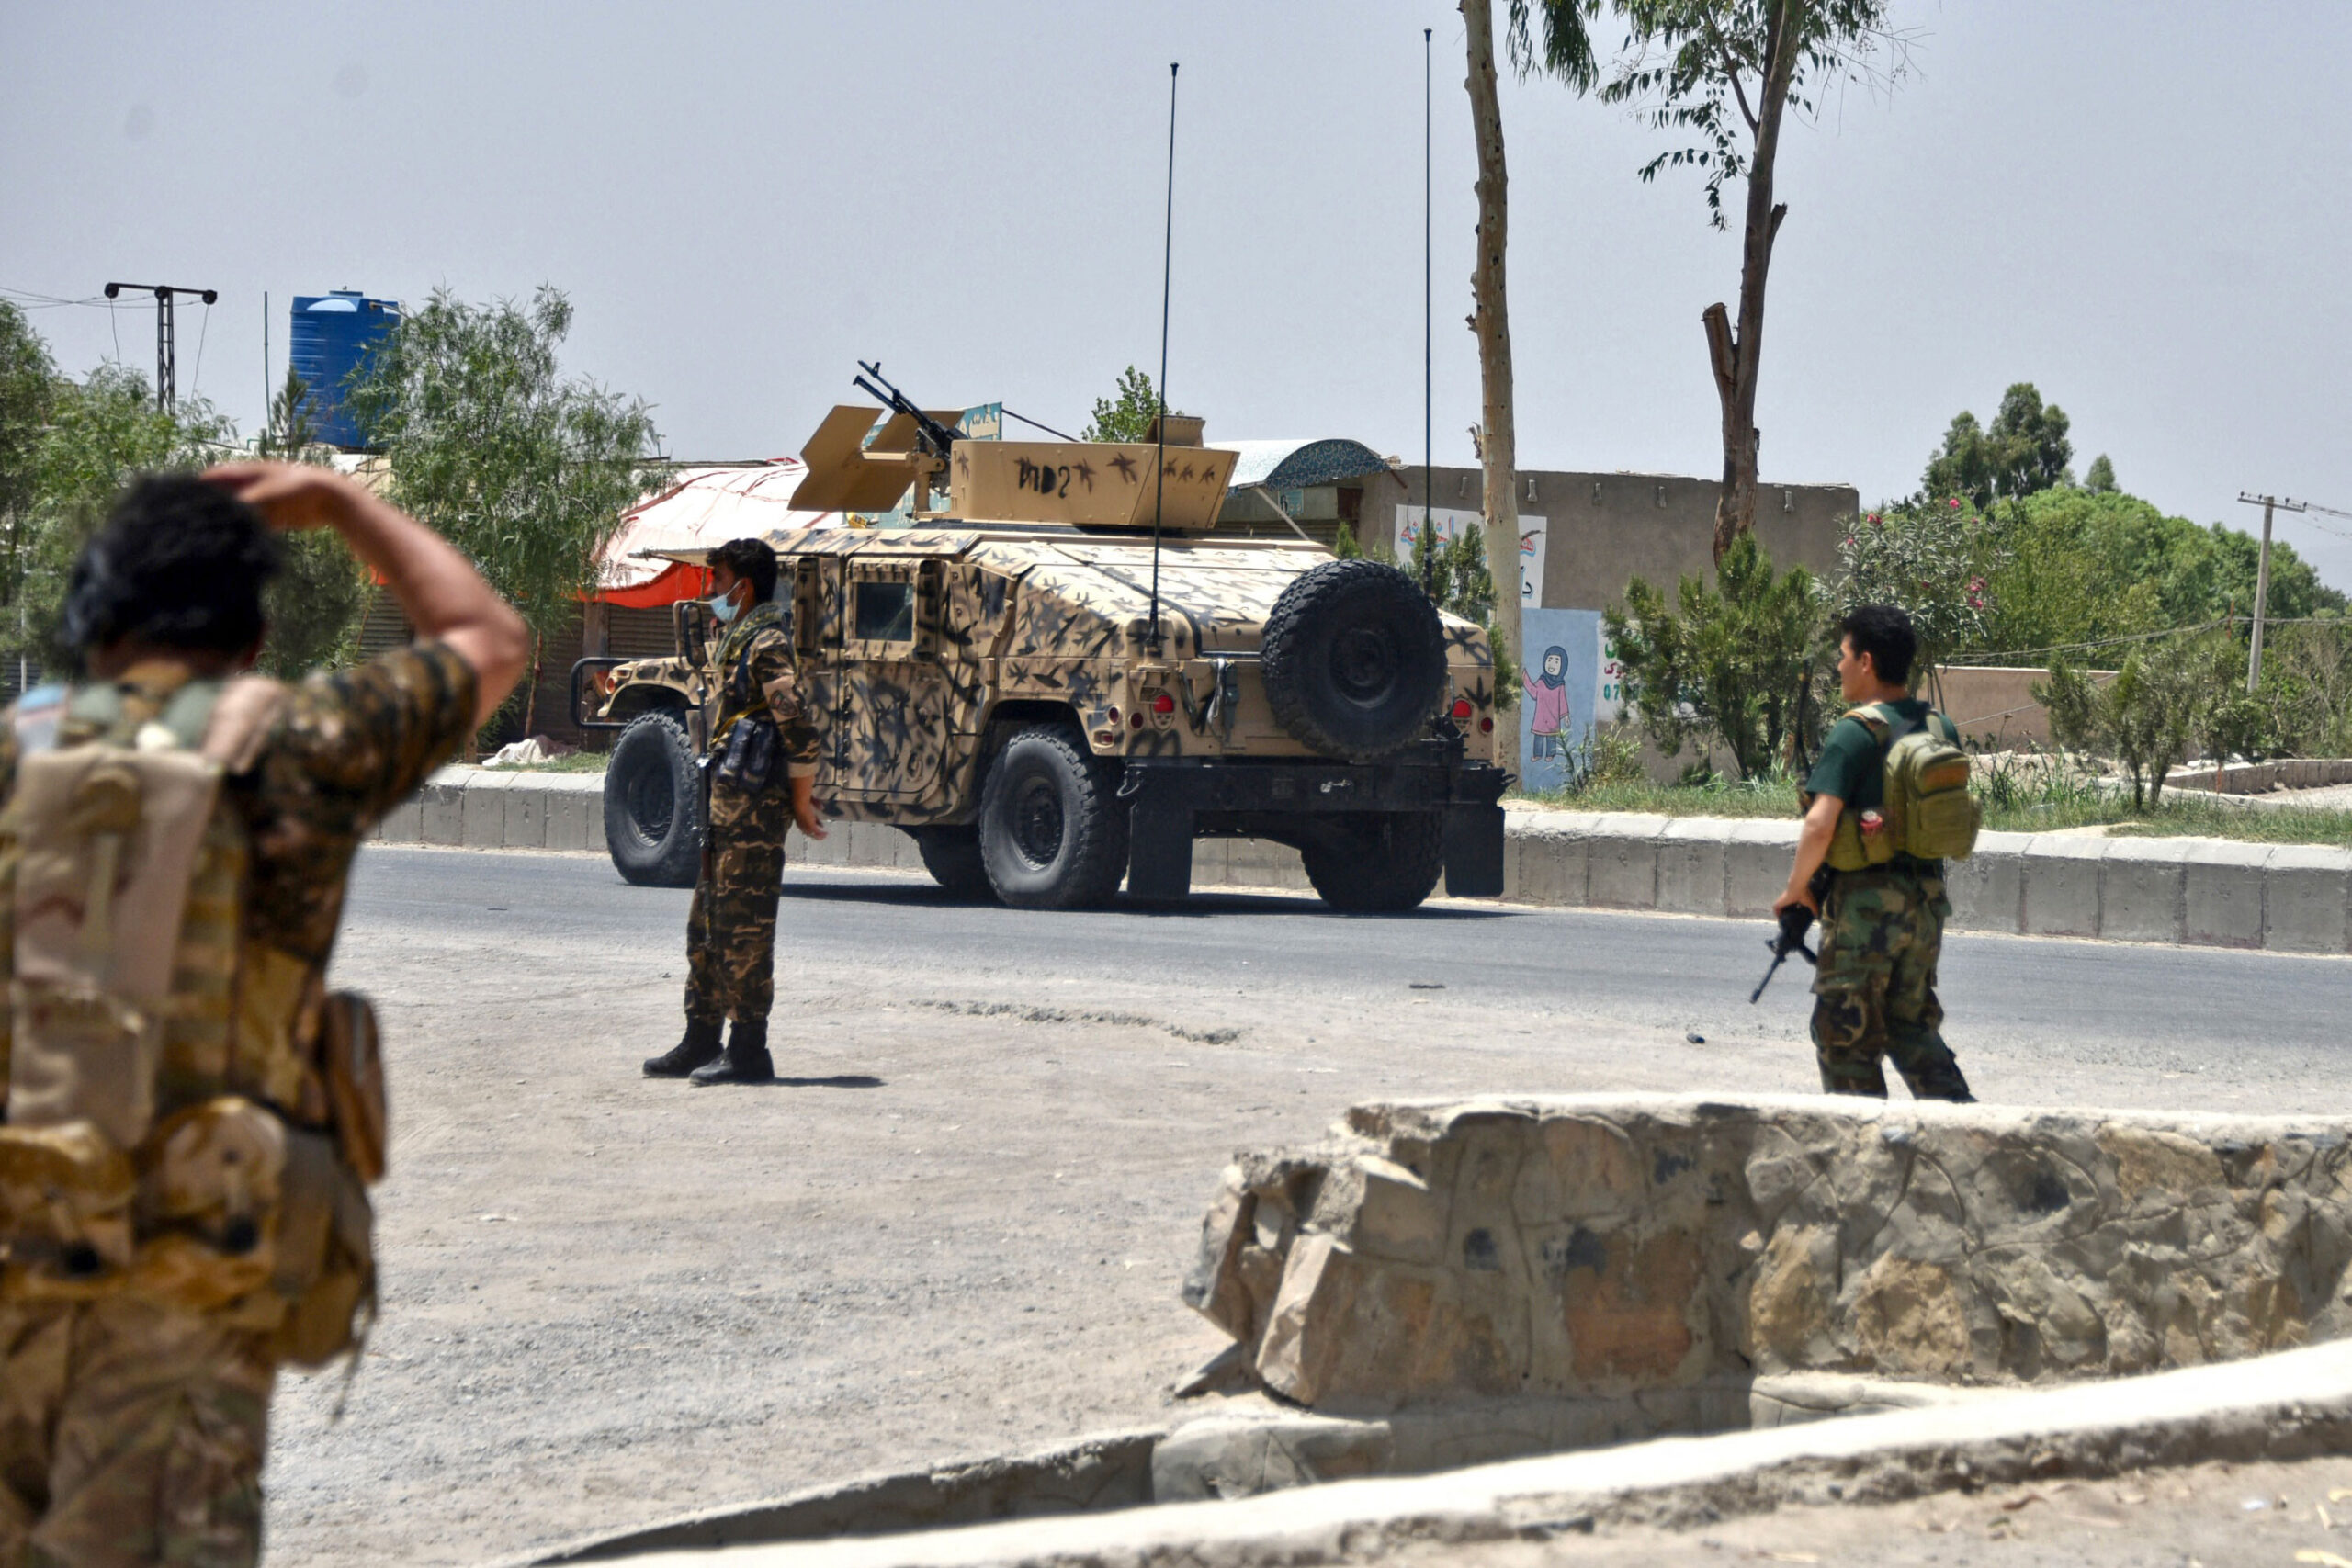 <i>Javed Tanveer/AFP/Getty Images</i><br/>Afghan security personnel stand guard along a road during an ongoing fight between Afghan forces and Taliban fighters in Kandahar on July 9.